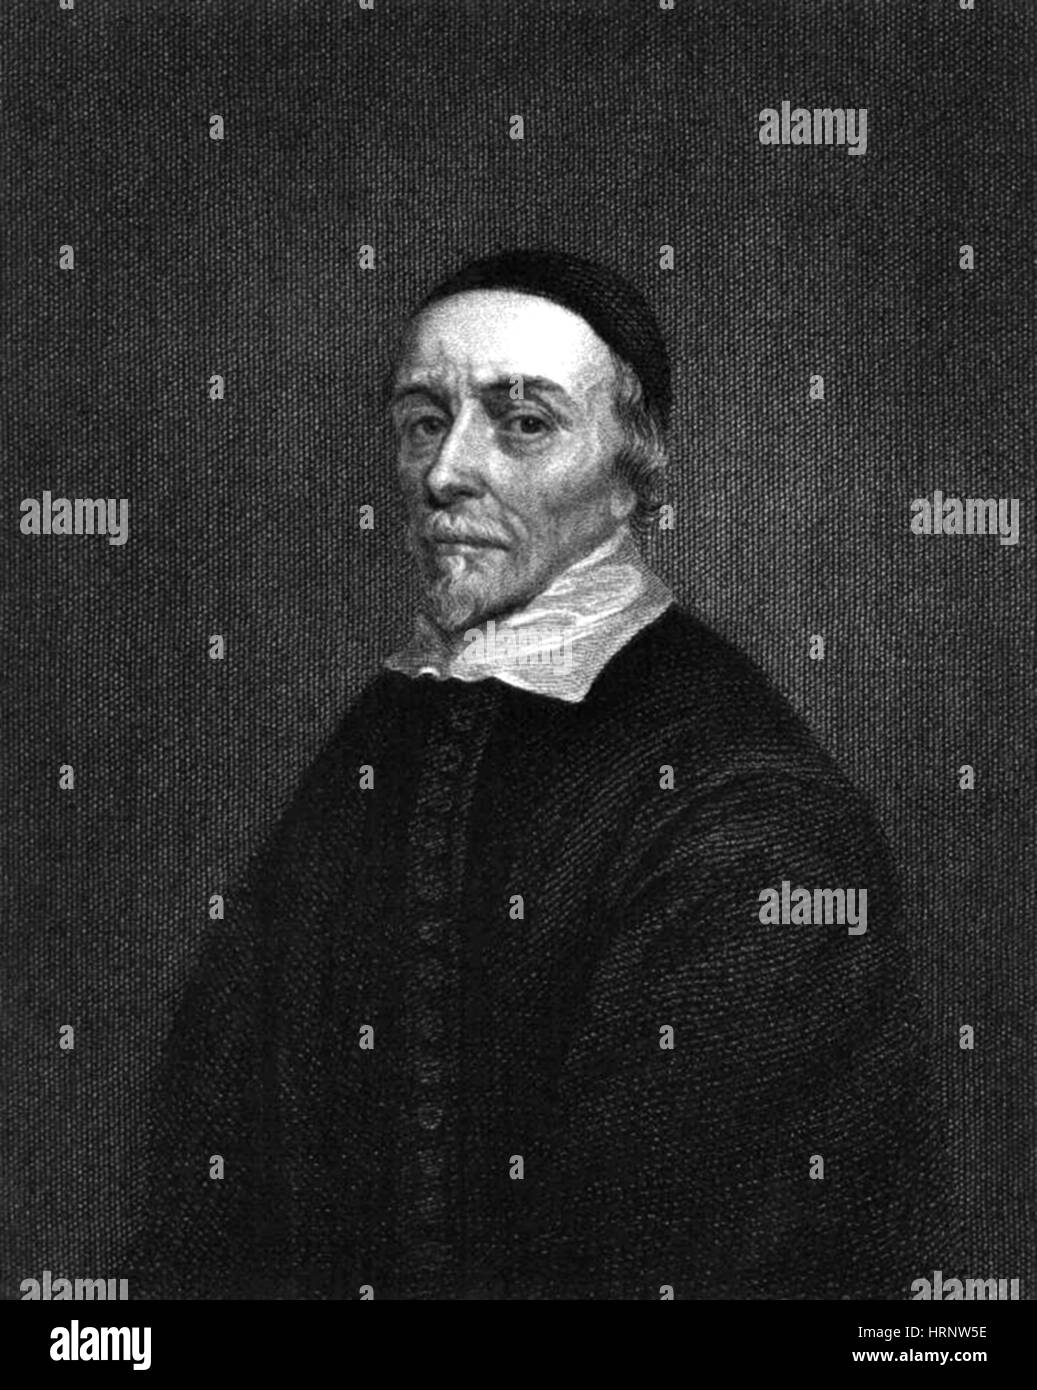 William Harvey Anatomy Stockfotos & William Harvey Anatomy Bilder ...